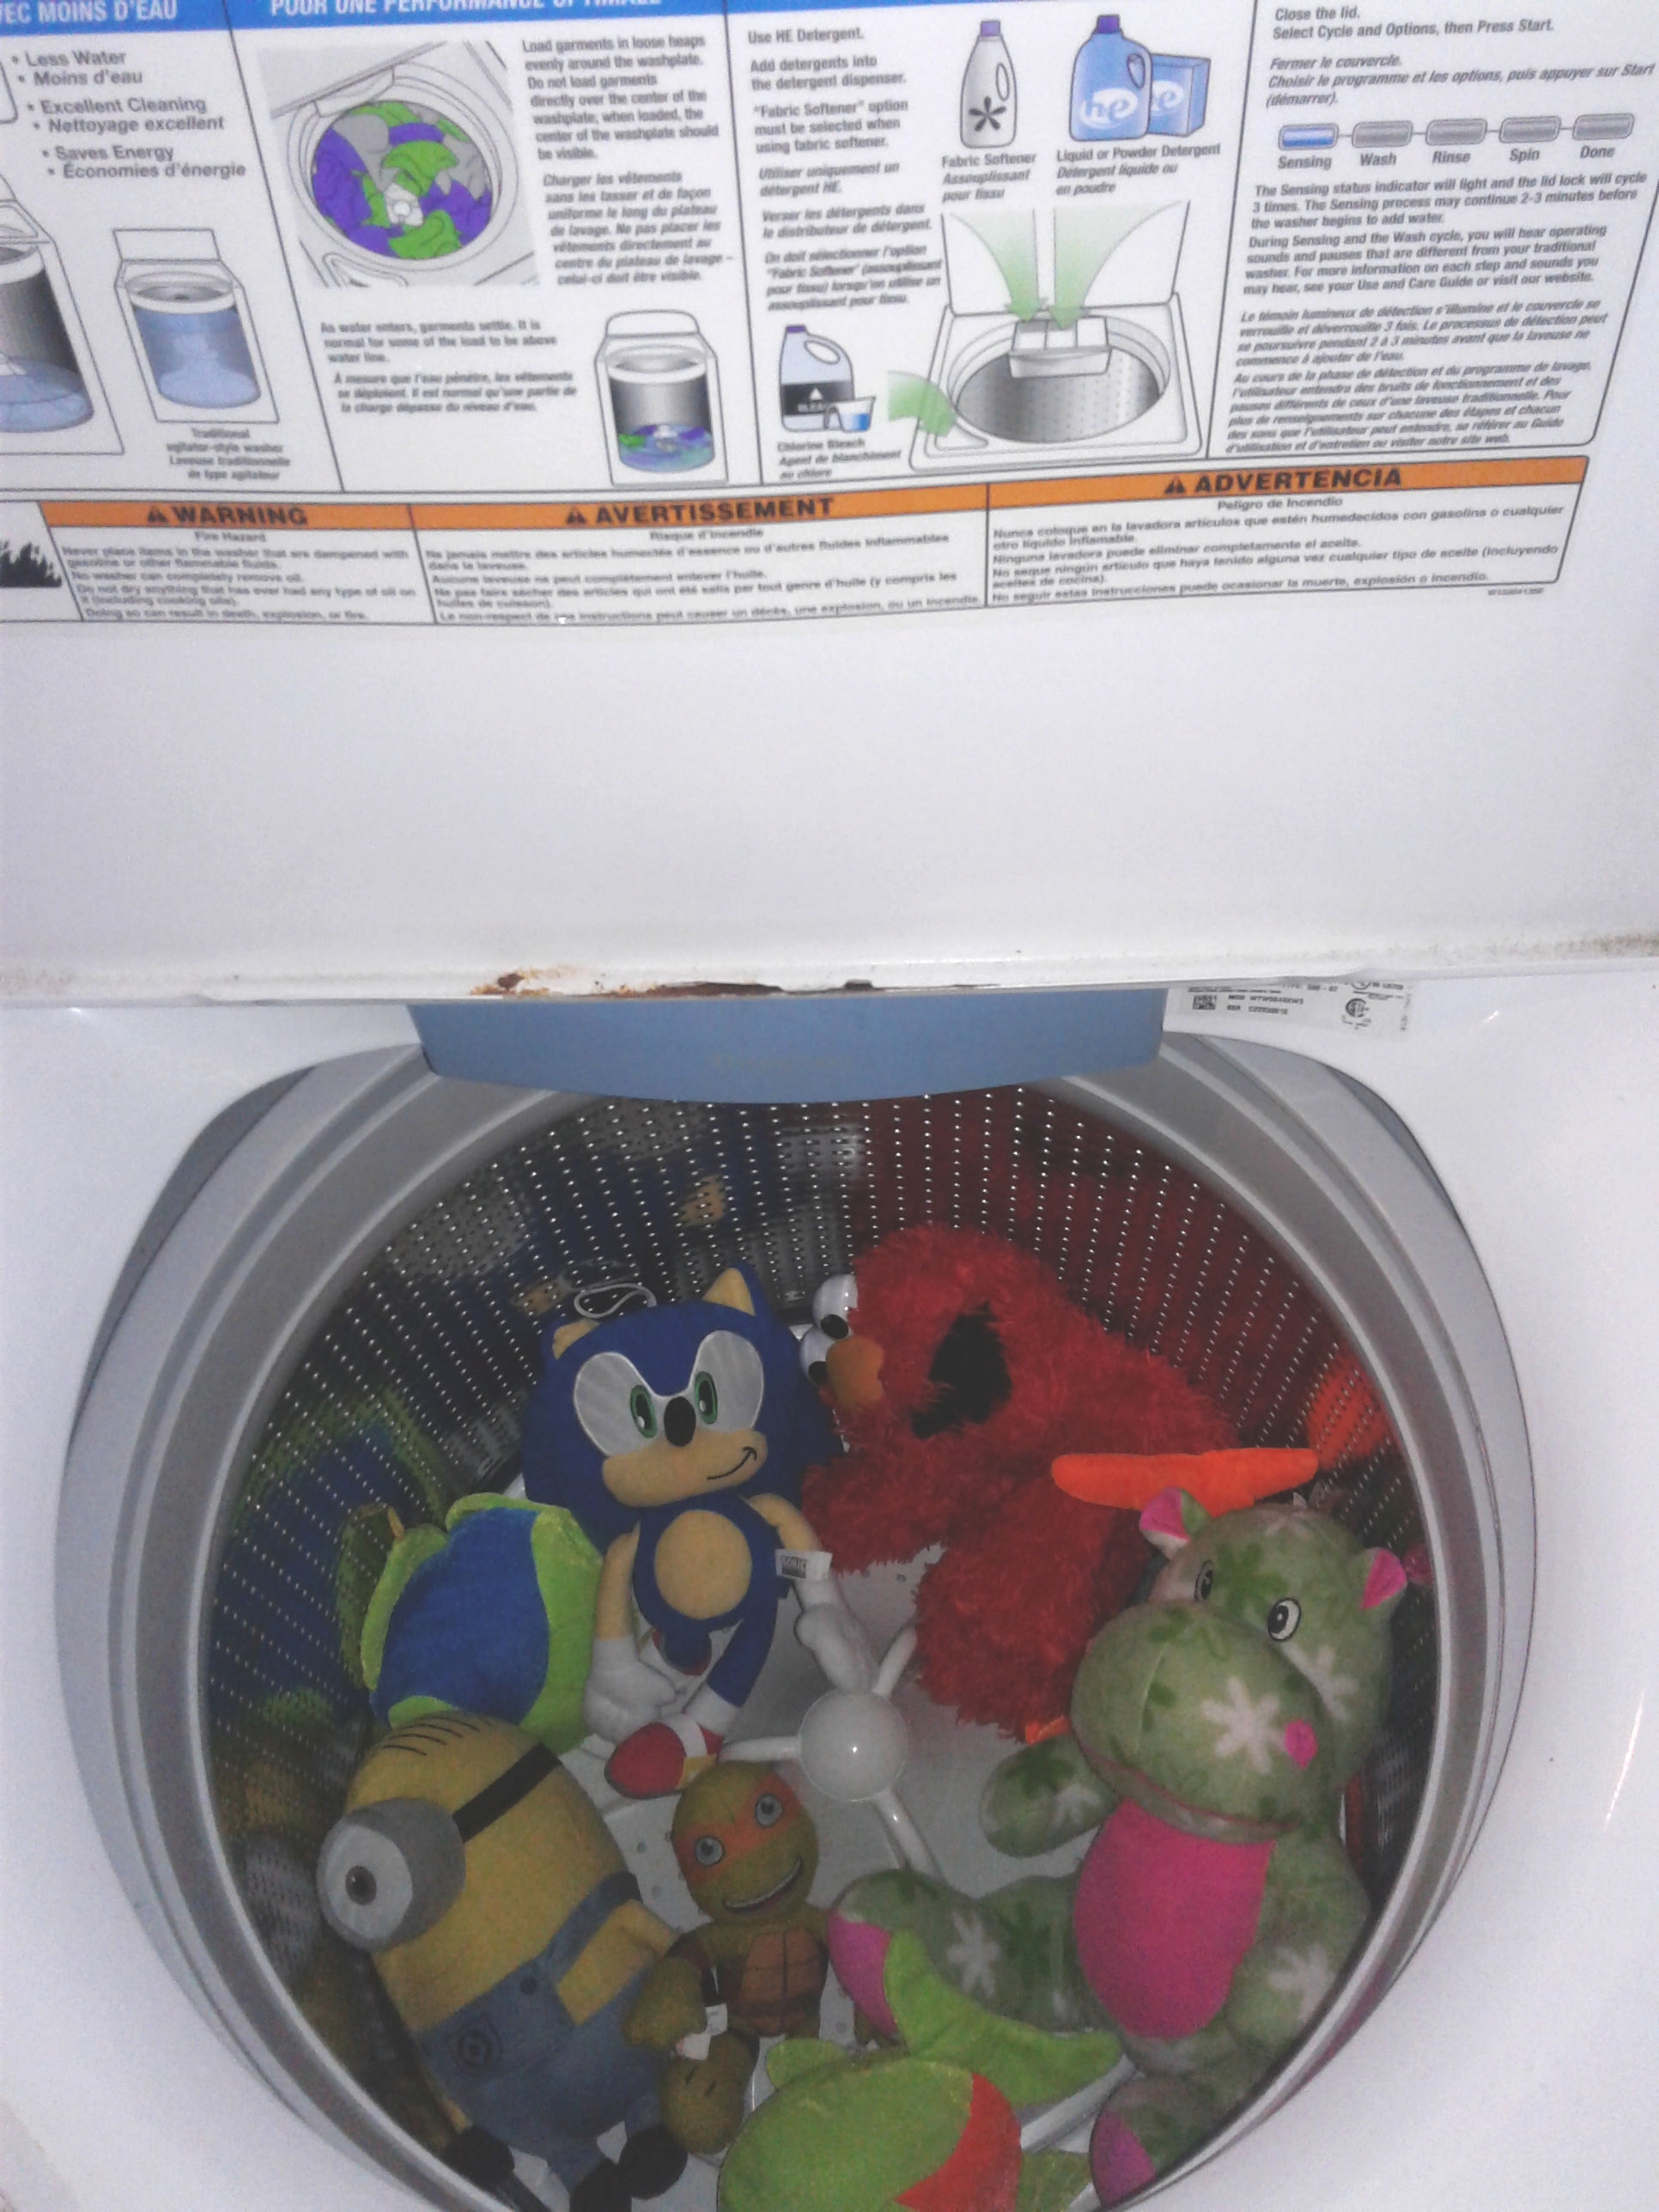 cleaning kids toys. stuffed animals in washer